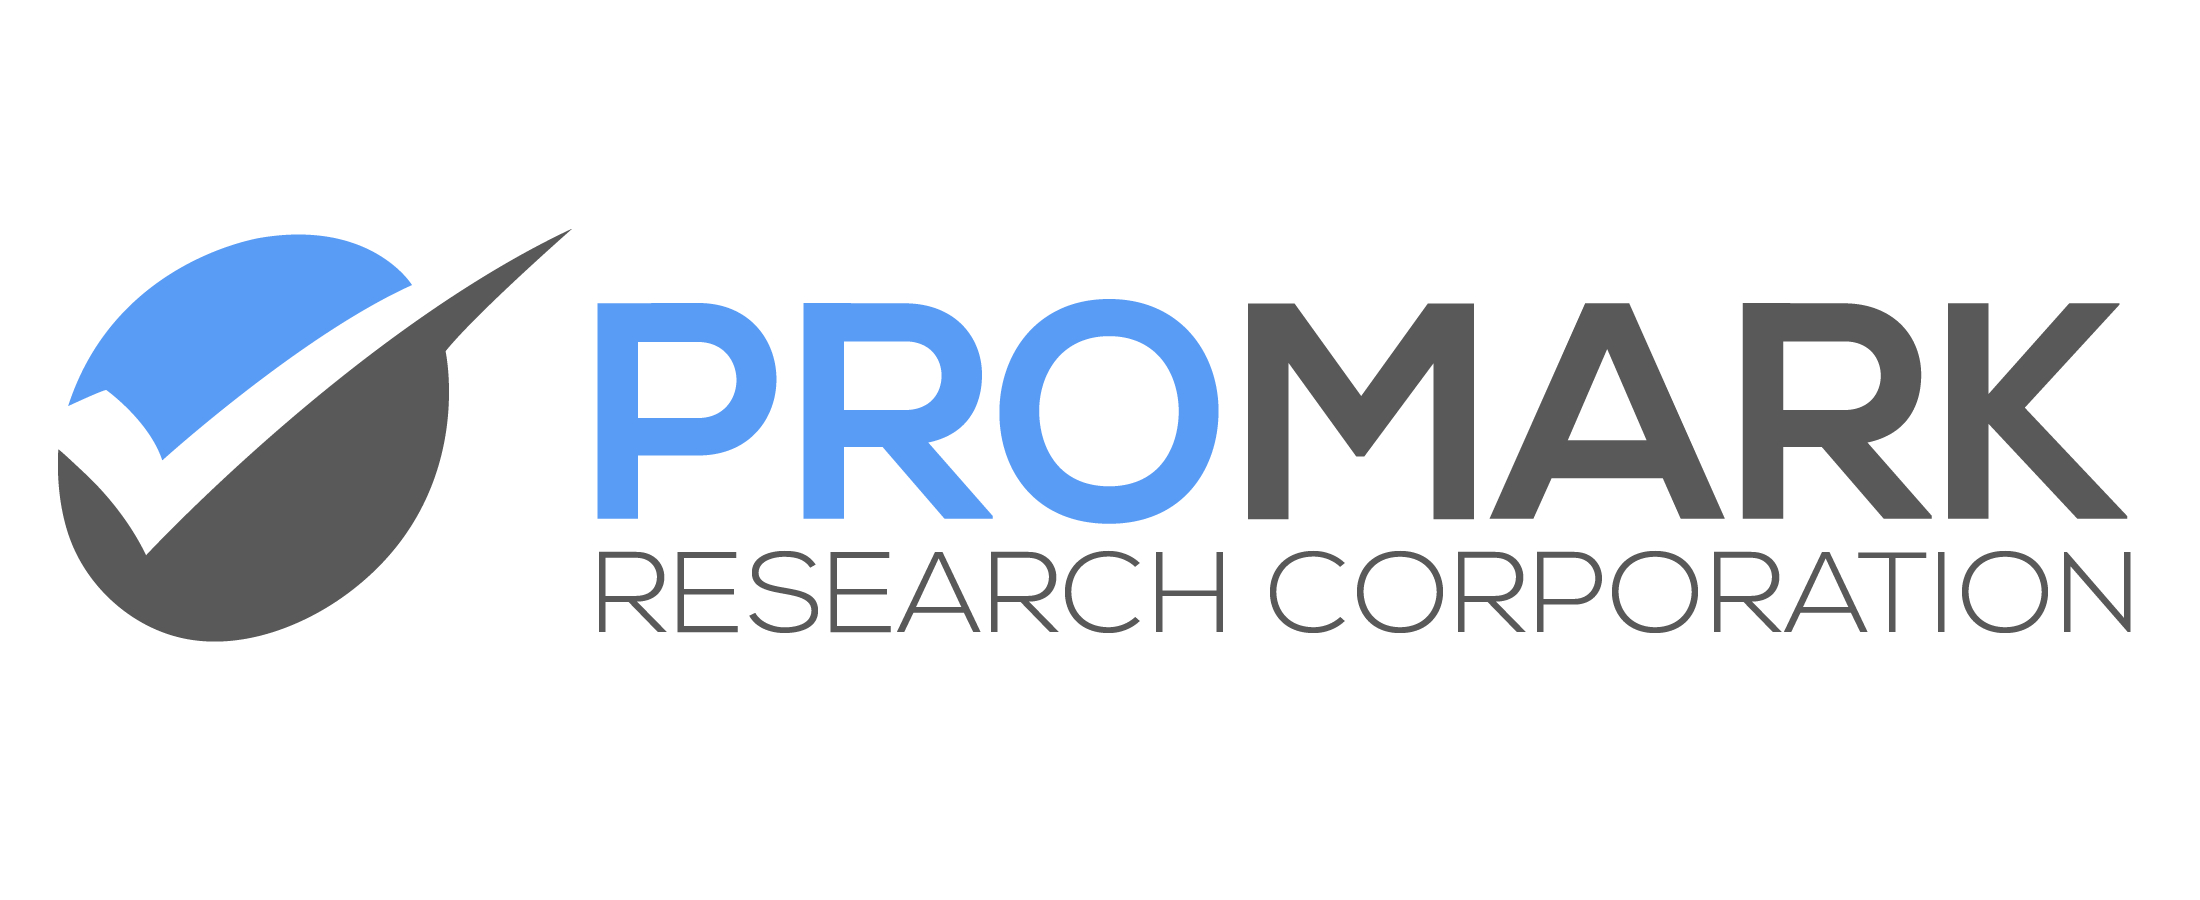 Promark Research